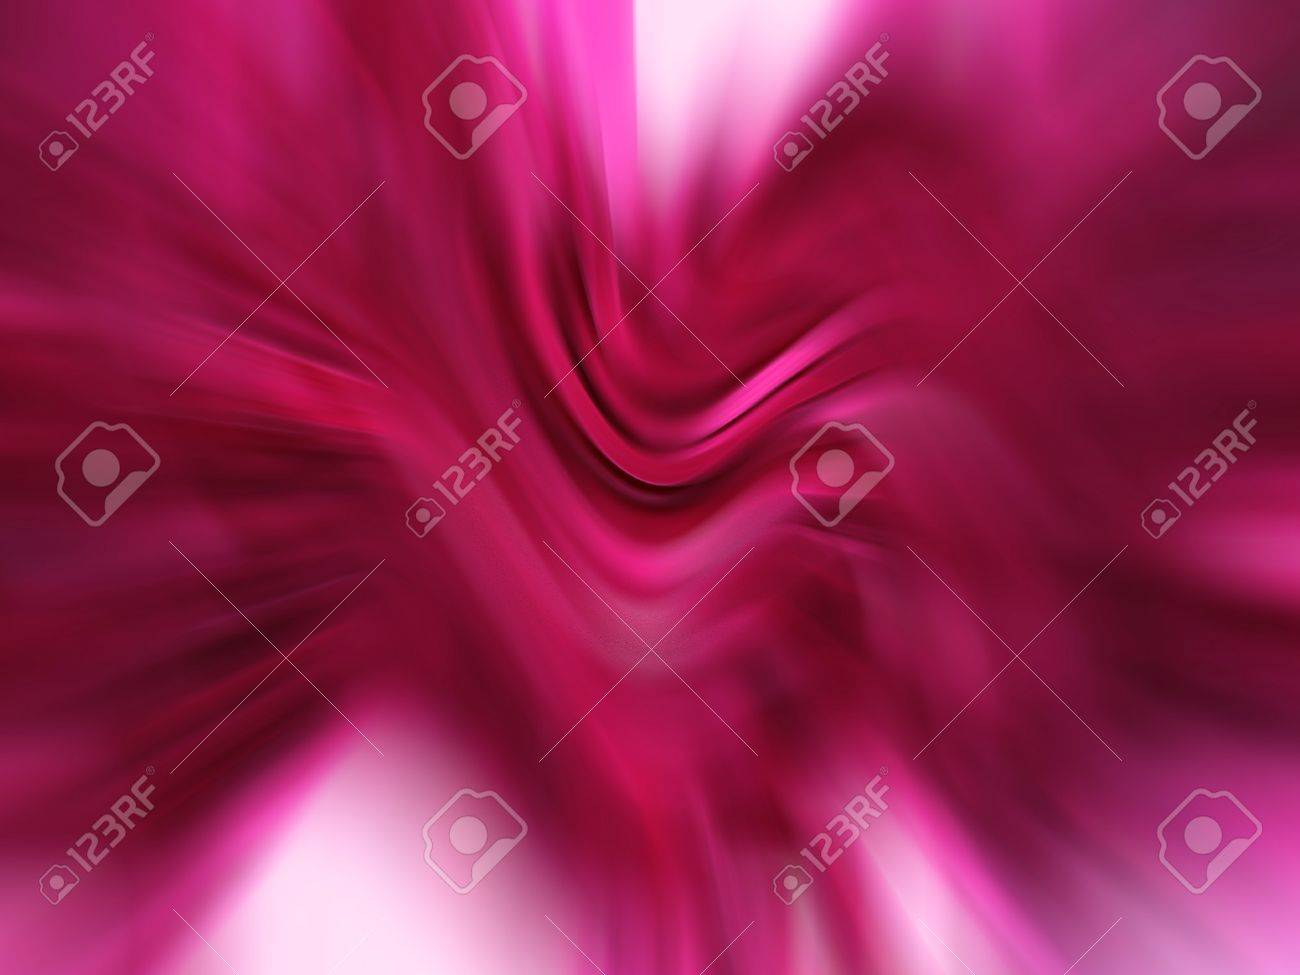 Pink soft blurs in blurry abstract background Stock Photo - 15750413